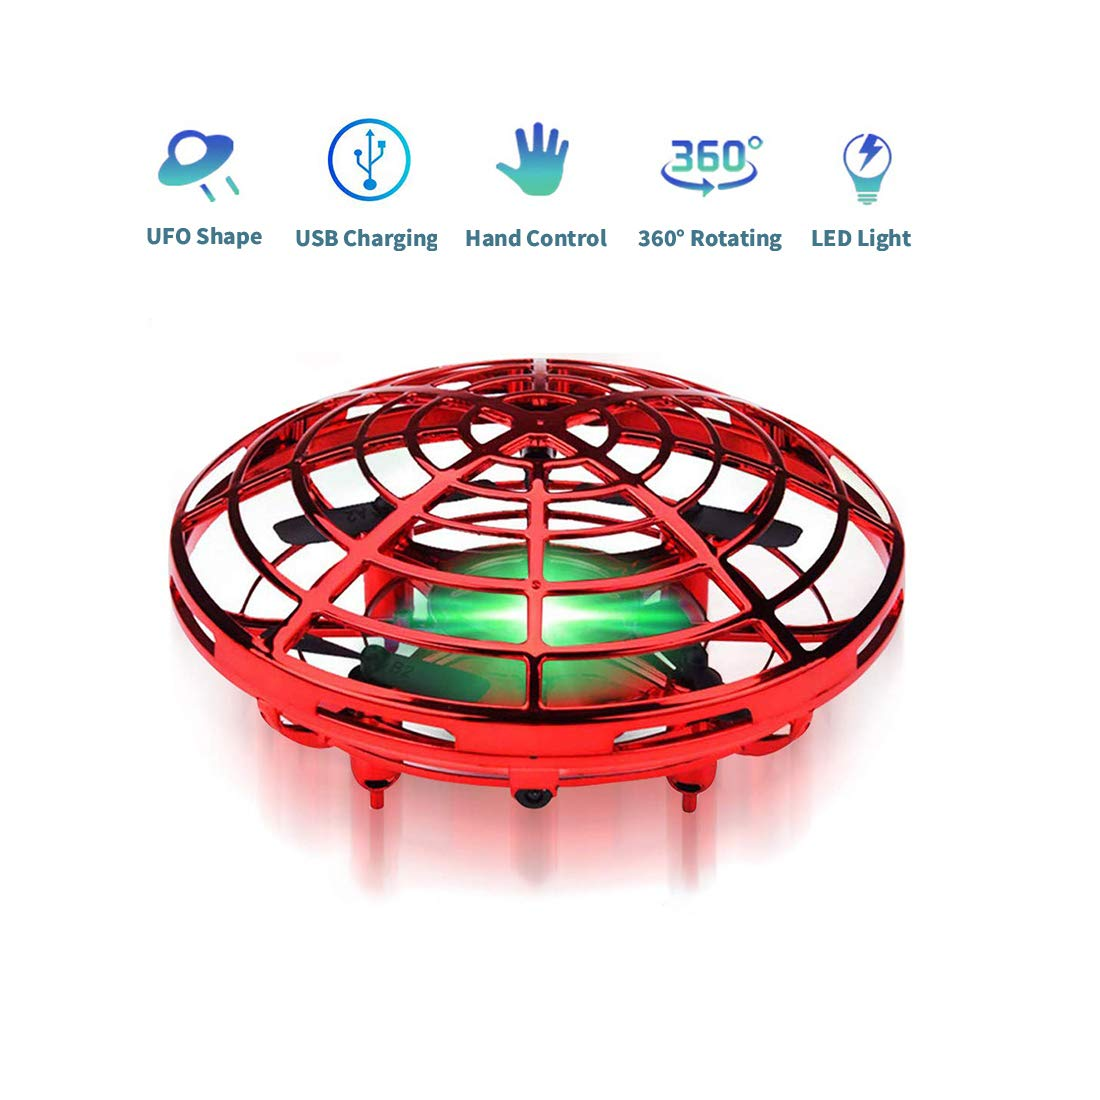 asuku Flying Ball Toy Drones,Hand Operated Drones for Kids or Adults - Scoot Flying Ball Drone,with 360°Rotating and Flashing LED Lights Mini Drone,for Boys and Girls, Kids Gifts (Red) by asuku